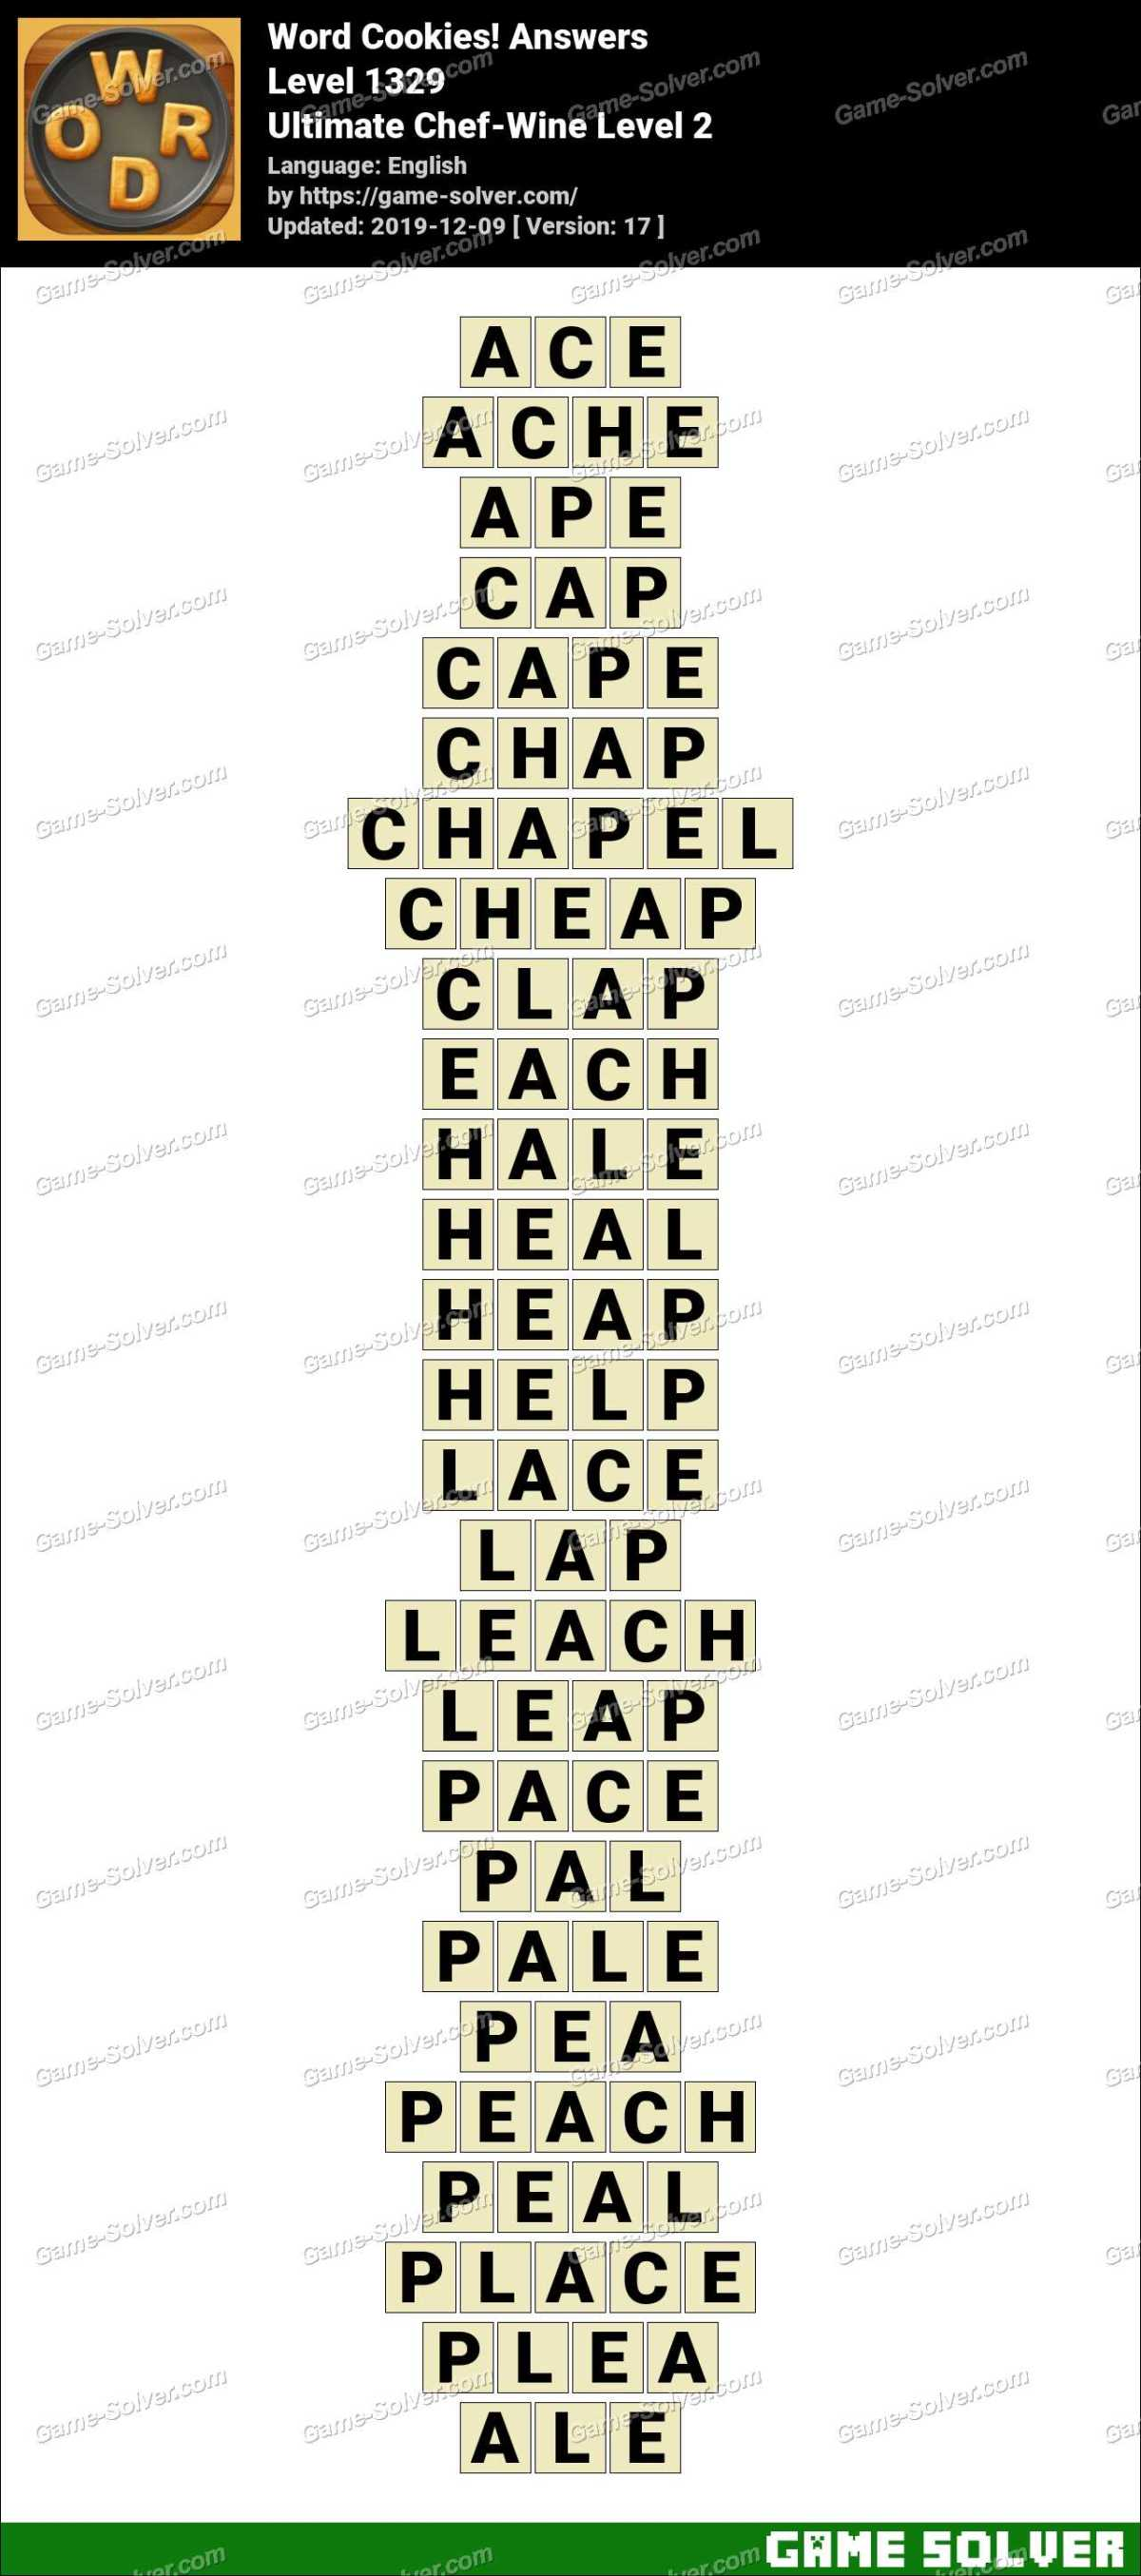 Word Cookies Ultimate Chef-Wine Level 2 Answers